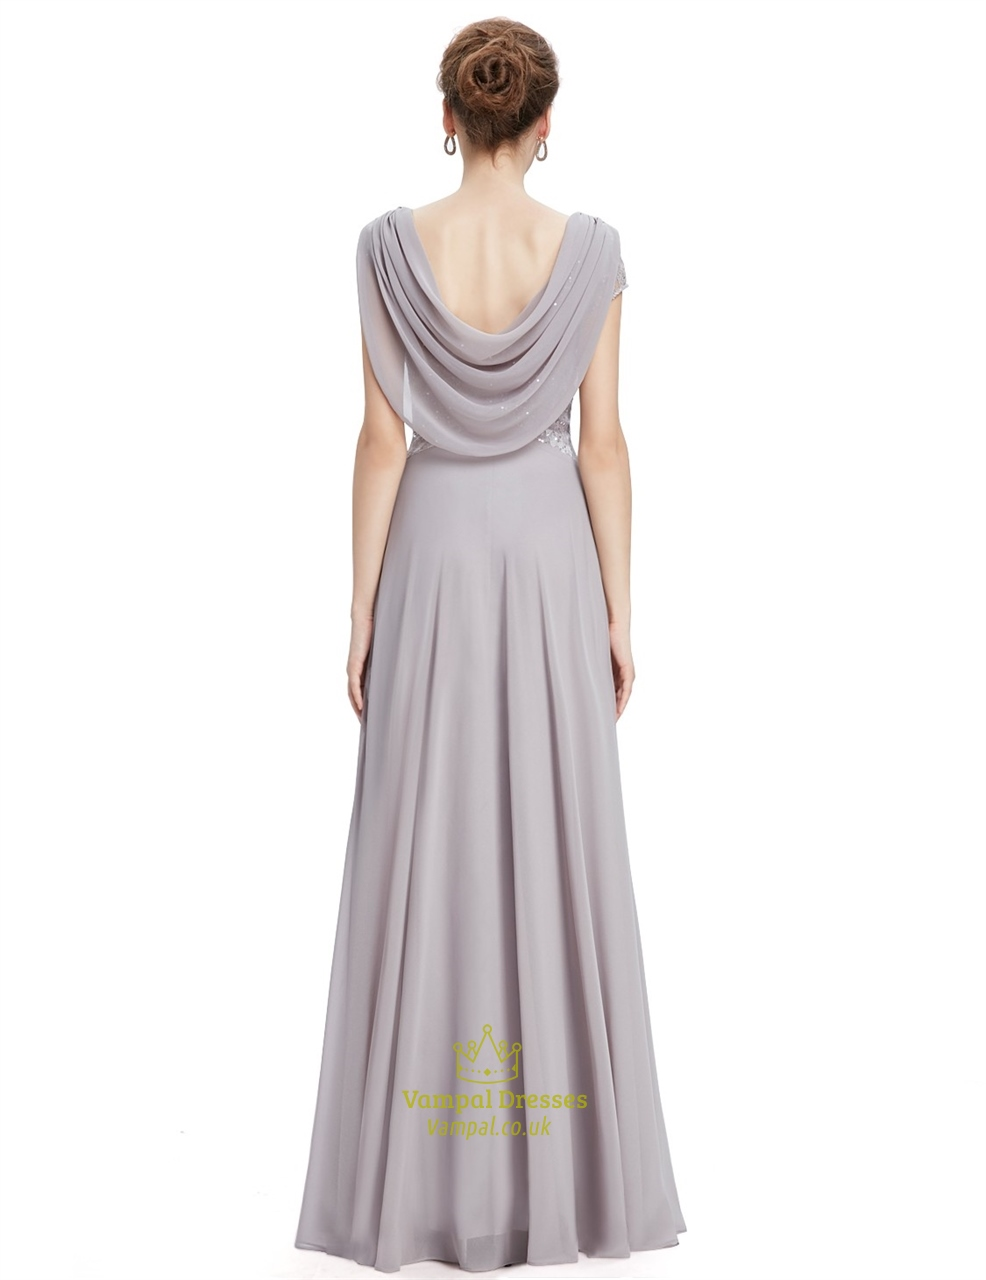 Grey V Neck Long Prom Dresses With Cap Sleeves Vampal